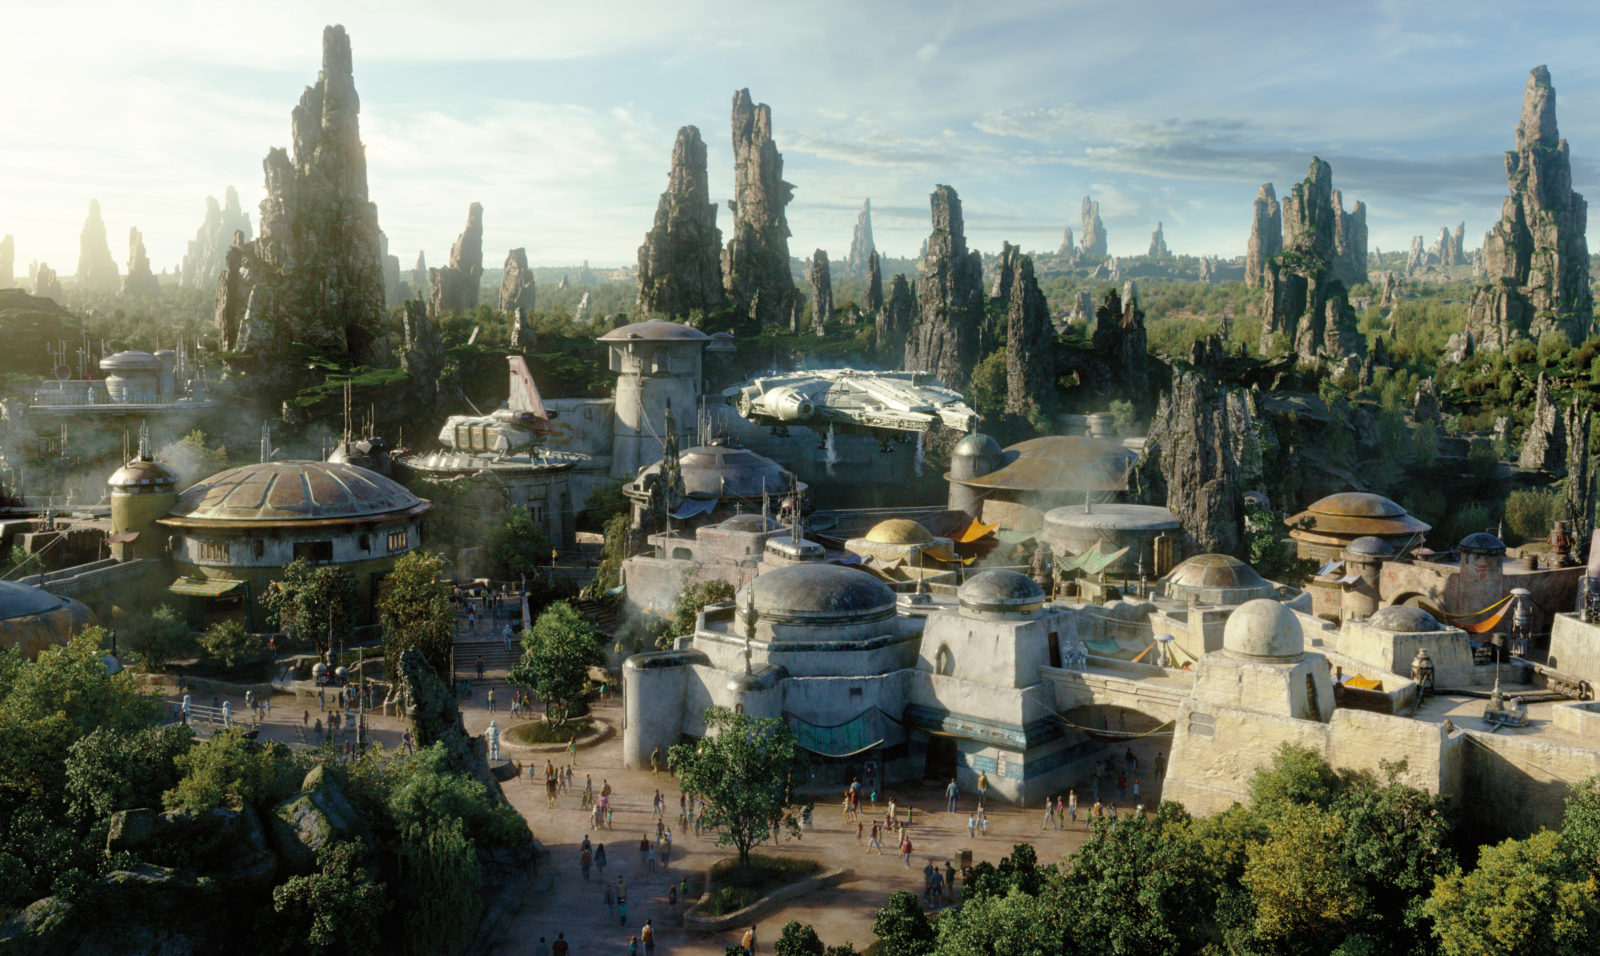 Star Wars: Galaxy's Edge Batuu Disney's Hollywood Studios